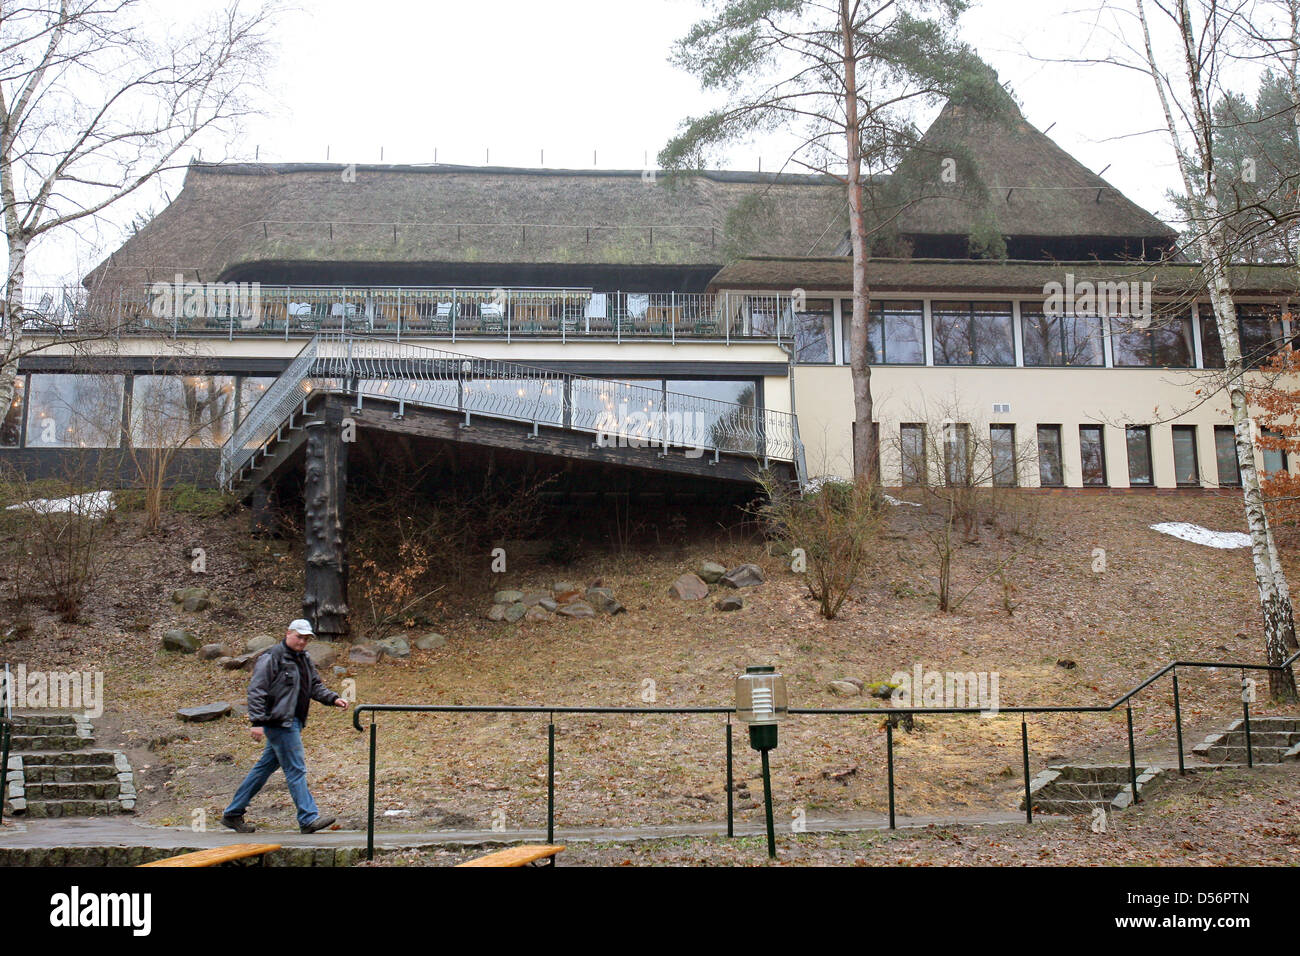 Travellers visit the former hunting residence of of former GRD leader Erich Honecker in Drewitz, Germany, 20 March - Stock Image